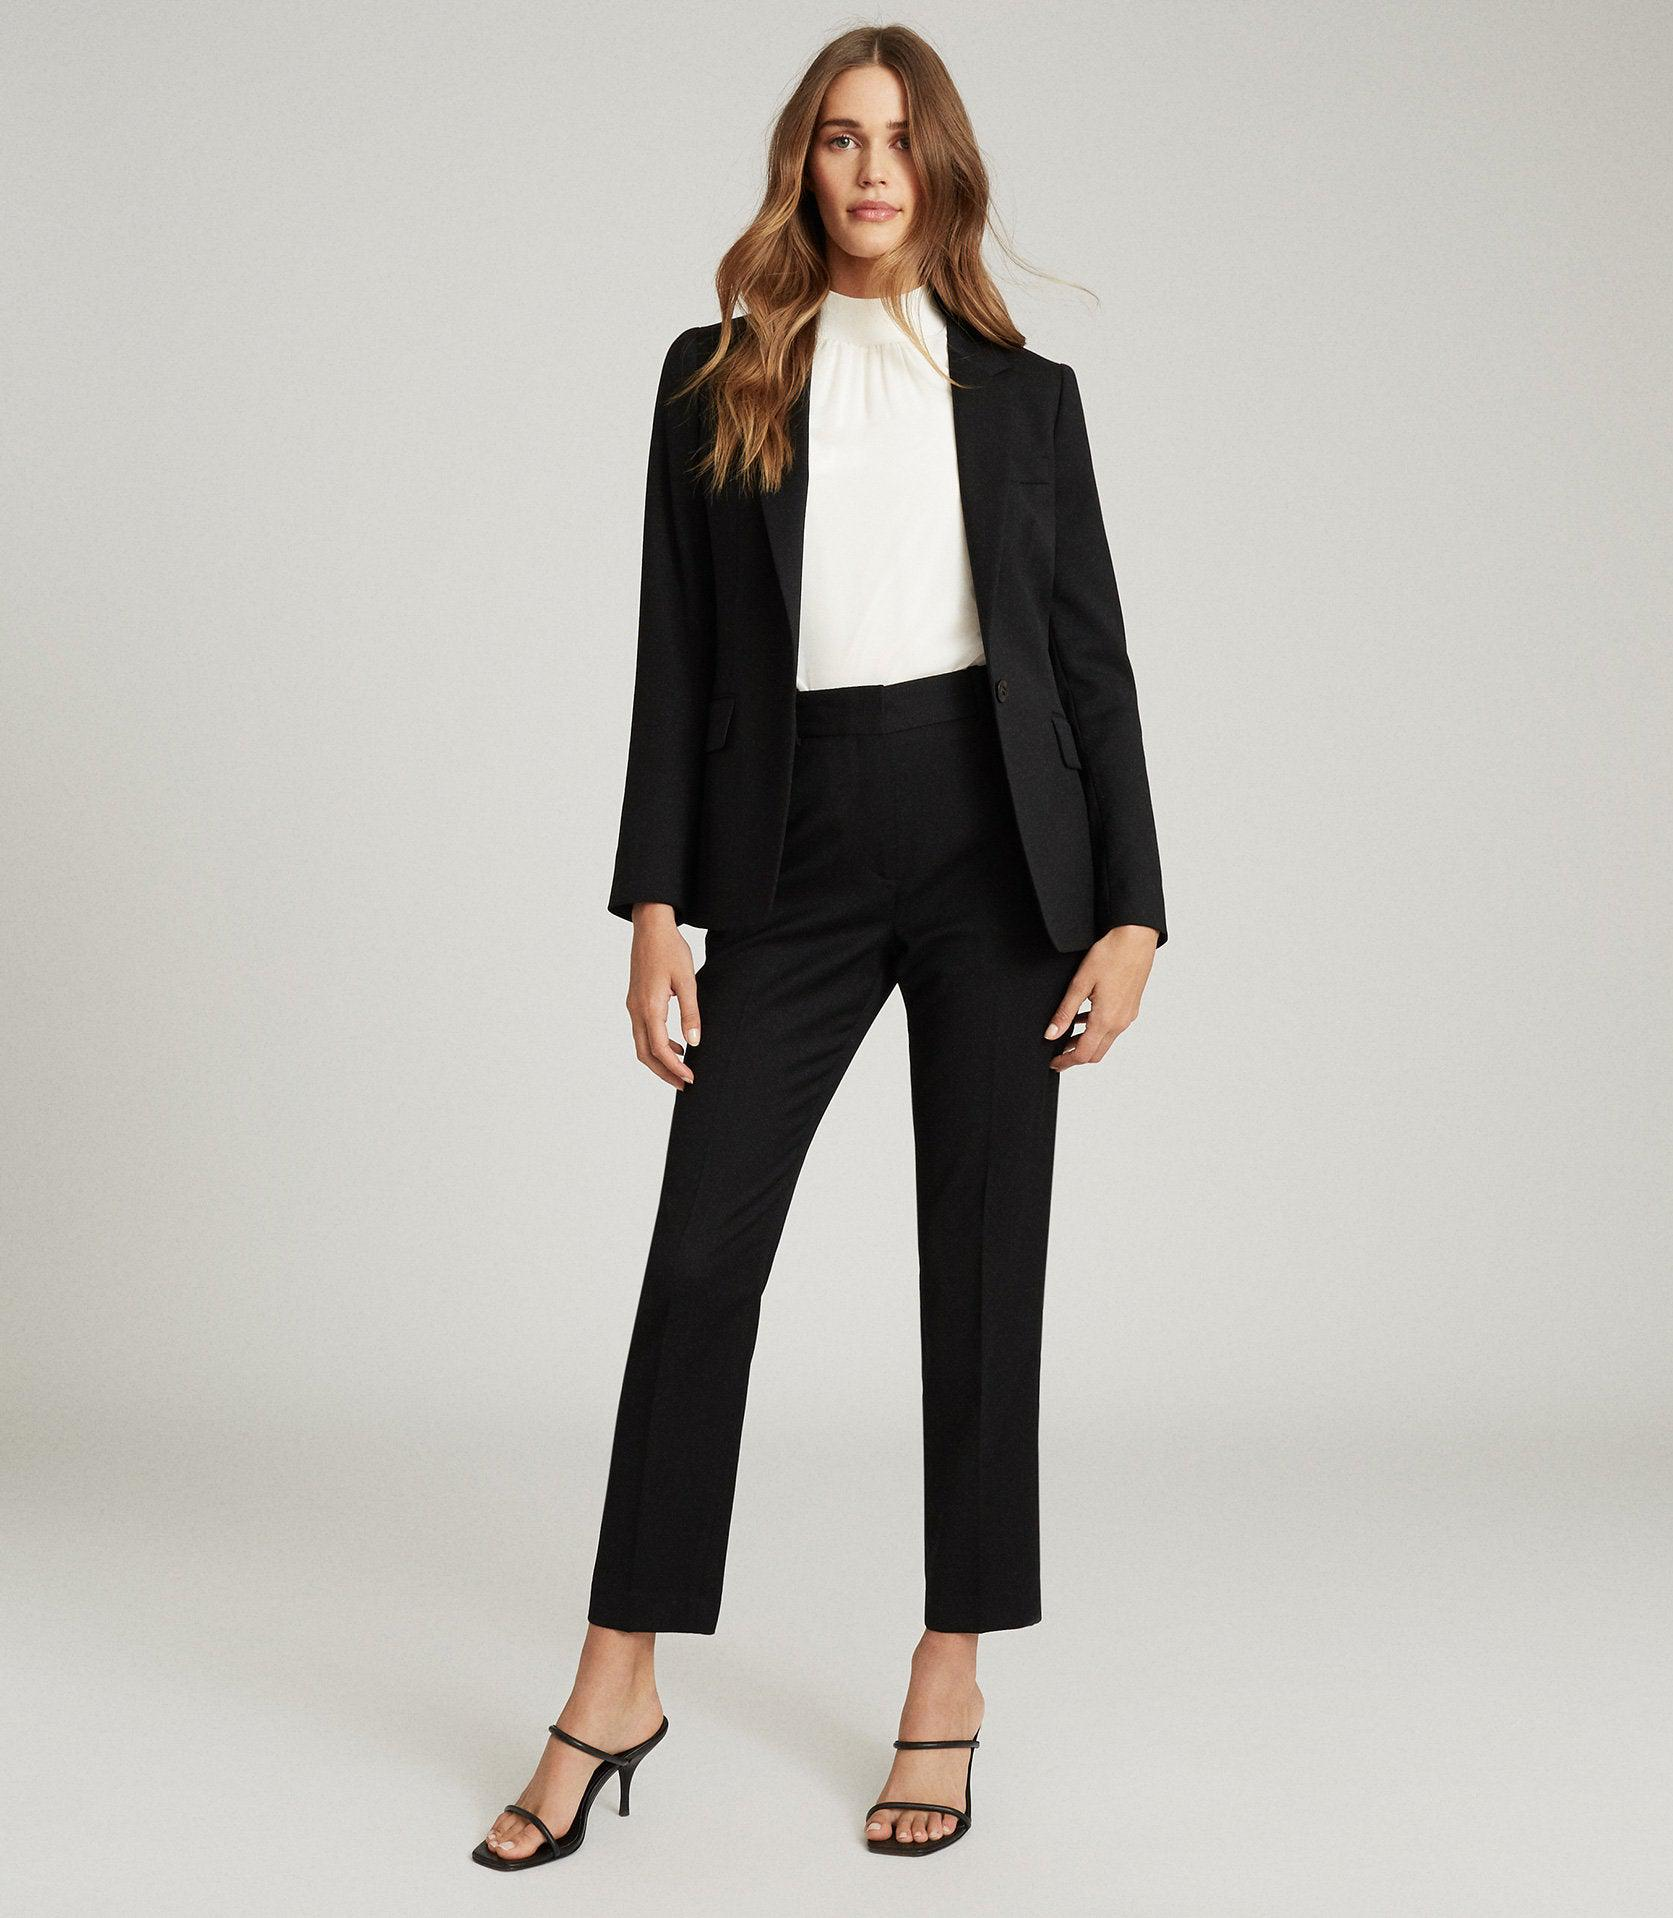 HAYES - SLIM FIT TAILORED PANTS